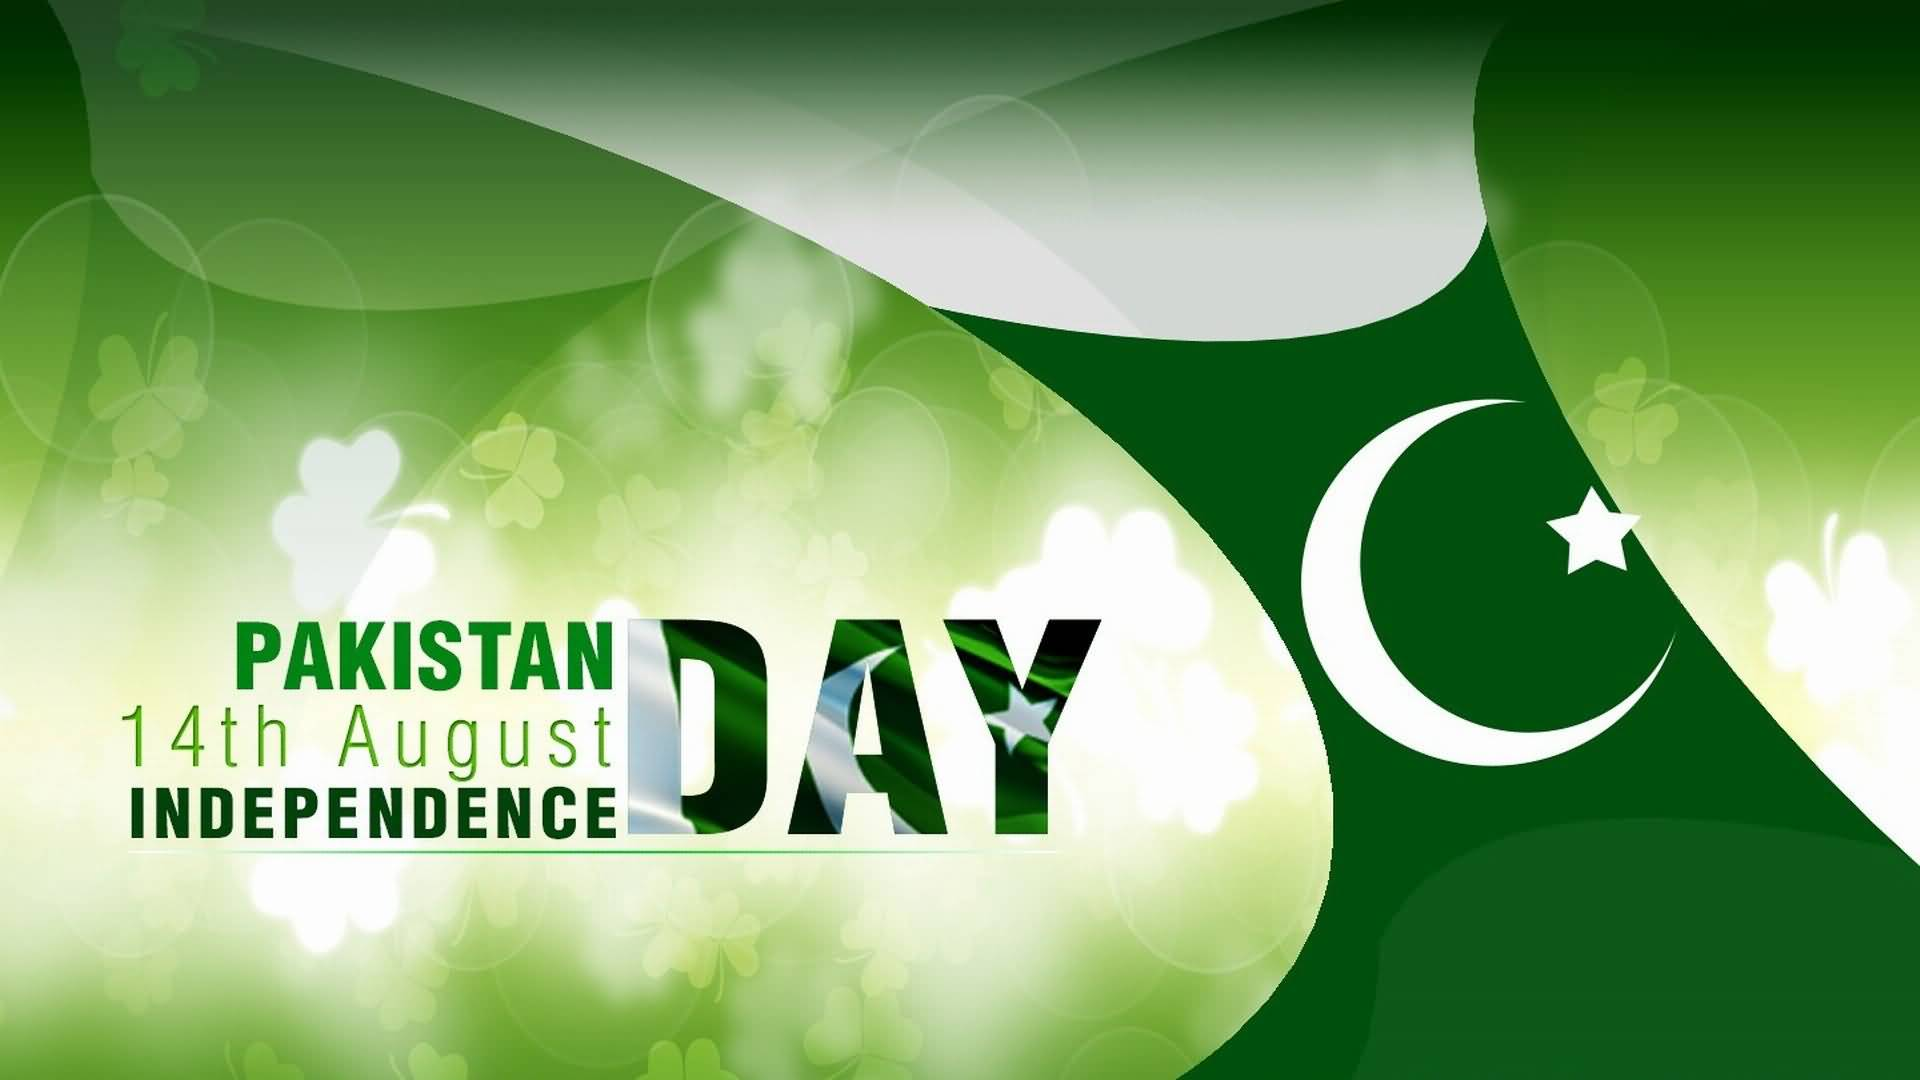 Pakistan independence day 2020, Pakistan day 2020, 15 august 2020, 14 august 2020, 14 august Pakistan, August 2020 Calendar, India independence day, India independence day 2020, dependence day Wallpaper, august 2020 calendar with holidays, 14 august 1947,14 august 2020, independence day Wikipedia, Pakistan republic day, significance of independence, independence day quotes, Pakistan flag, independence day of Pakistan essay